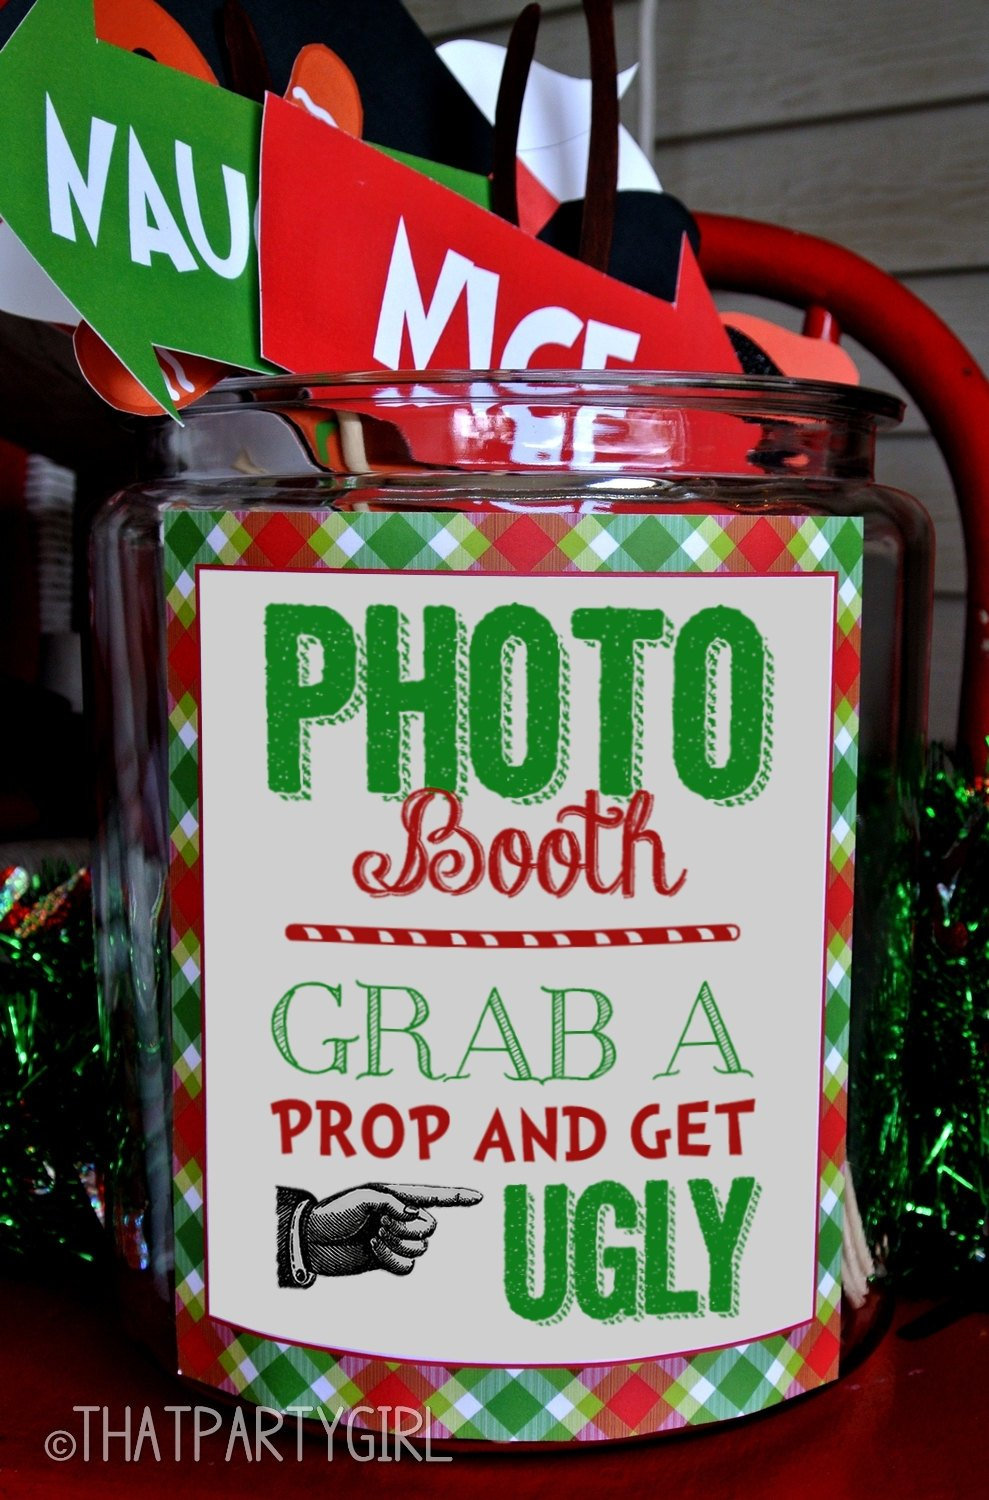 Ugly Sweater Party Photo Booth Props Package, Ugly Sweater Party, Ugly Sweater Party Decor, Ugly Sweater Party Decorations, Instant Download